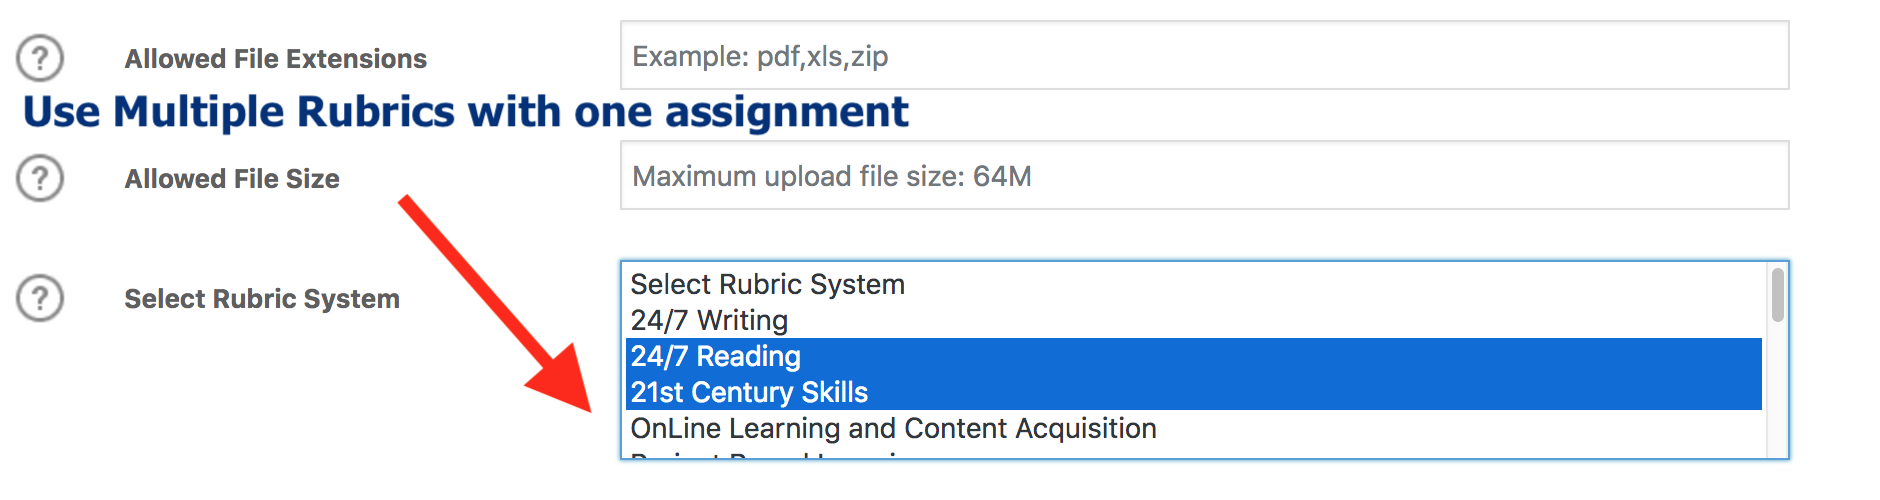 Use Multiple Rubrics with one assignment with LearnDash LMS and Wordpress.